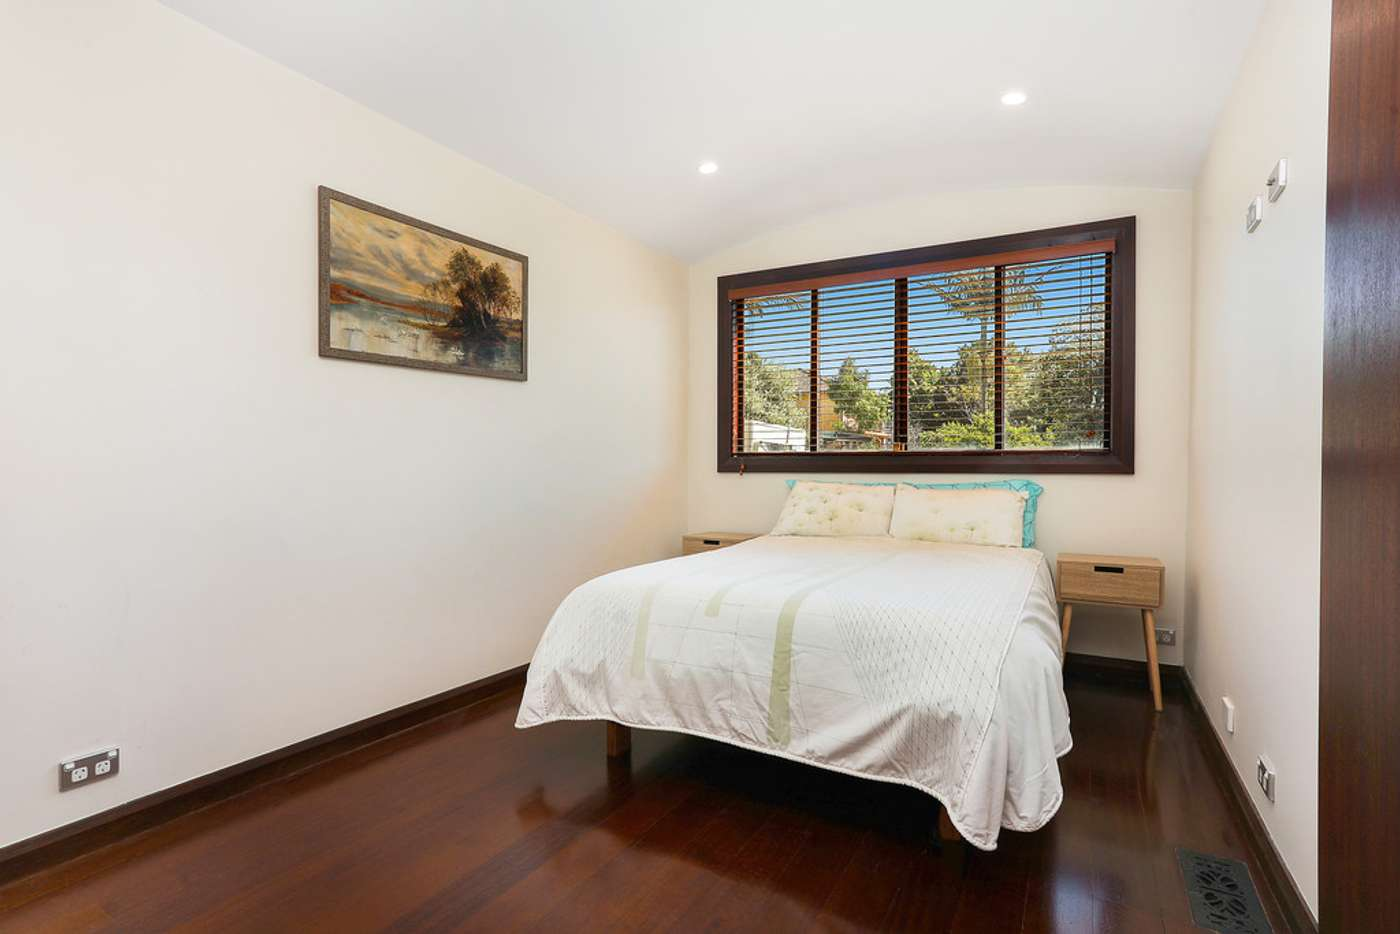 Sixth view of Homely house listing, 20 Regent Street, Summer Hill NSW 2130